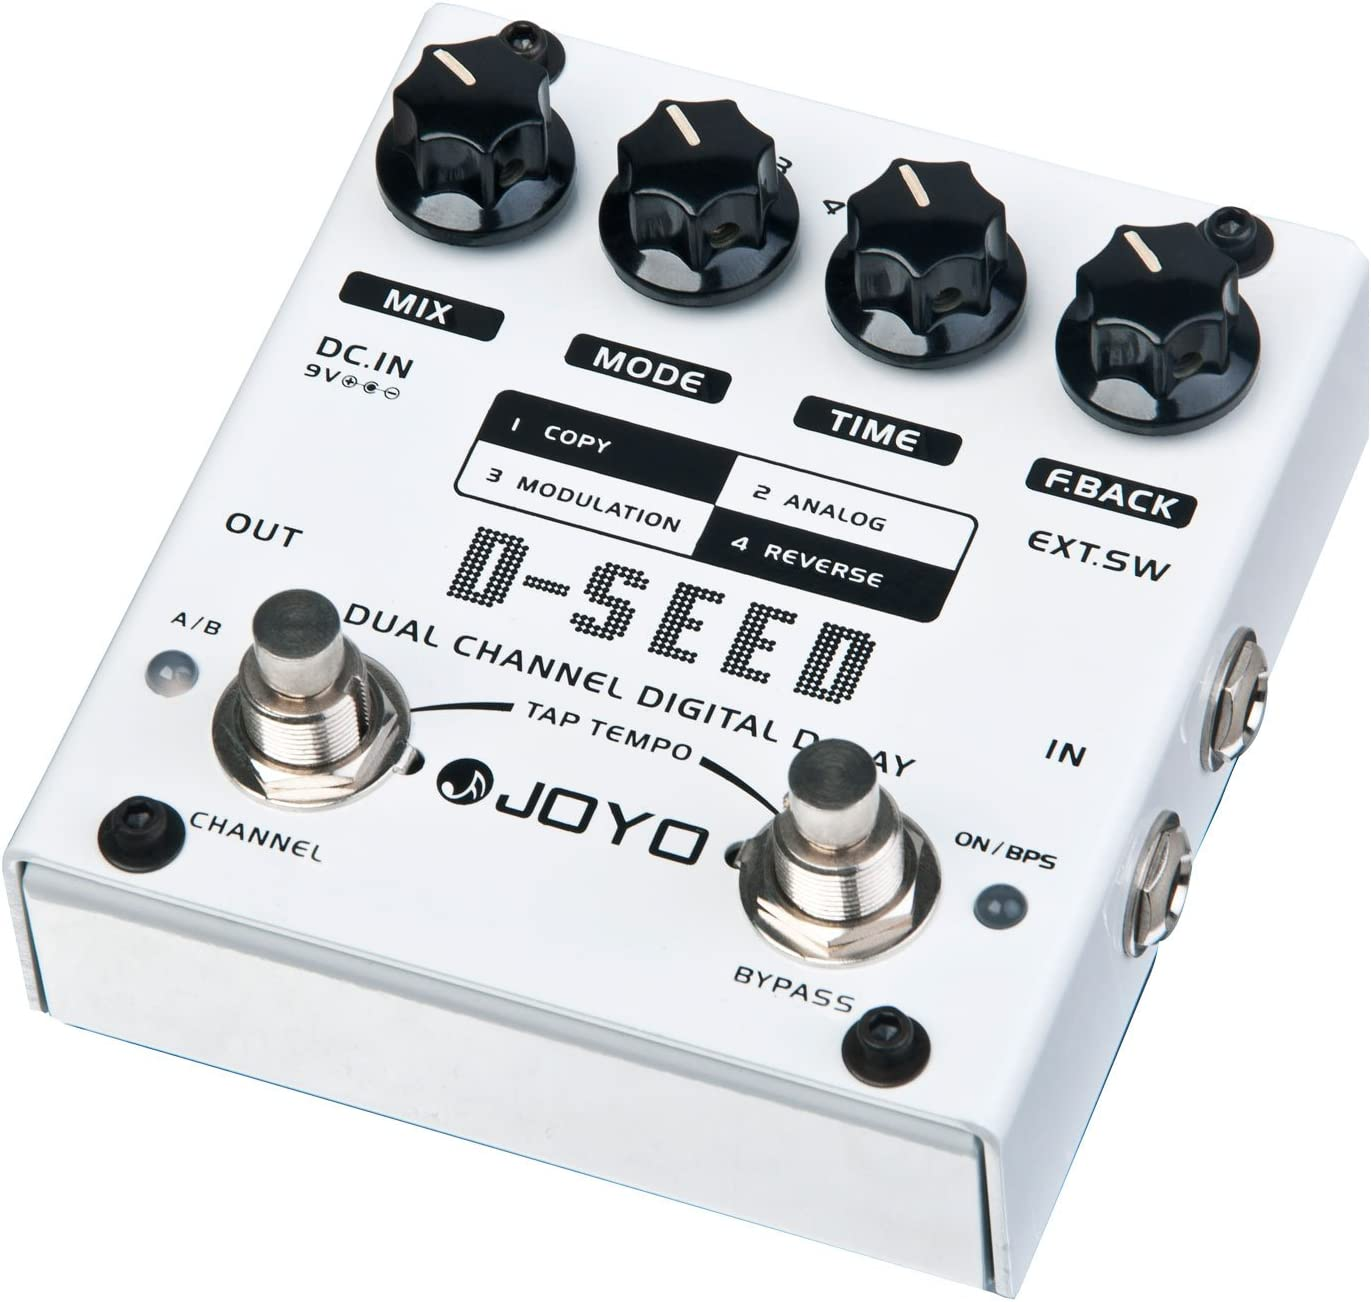 JOYO D-SEED Multi Pedal Dual Channel Digital Looper Pedal Multi-Effect